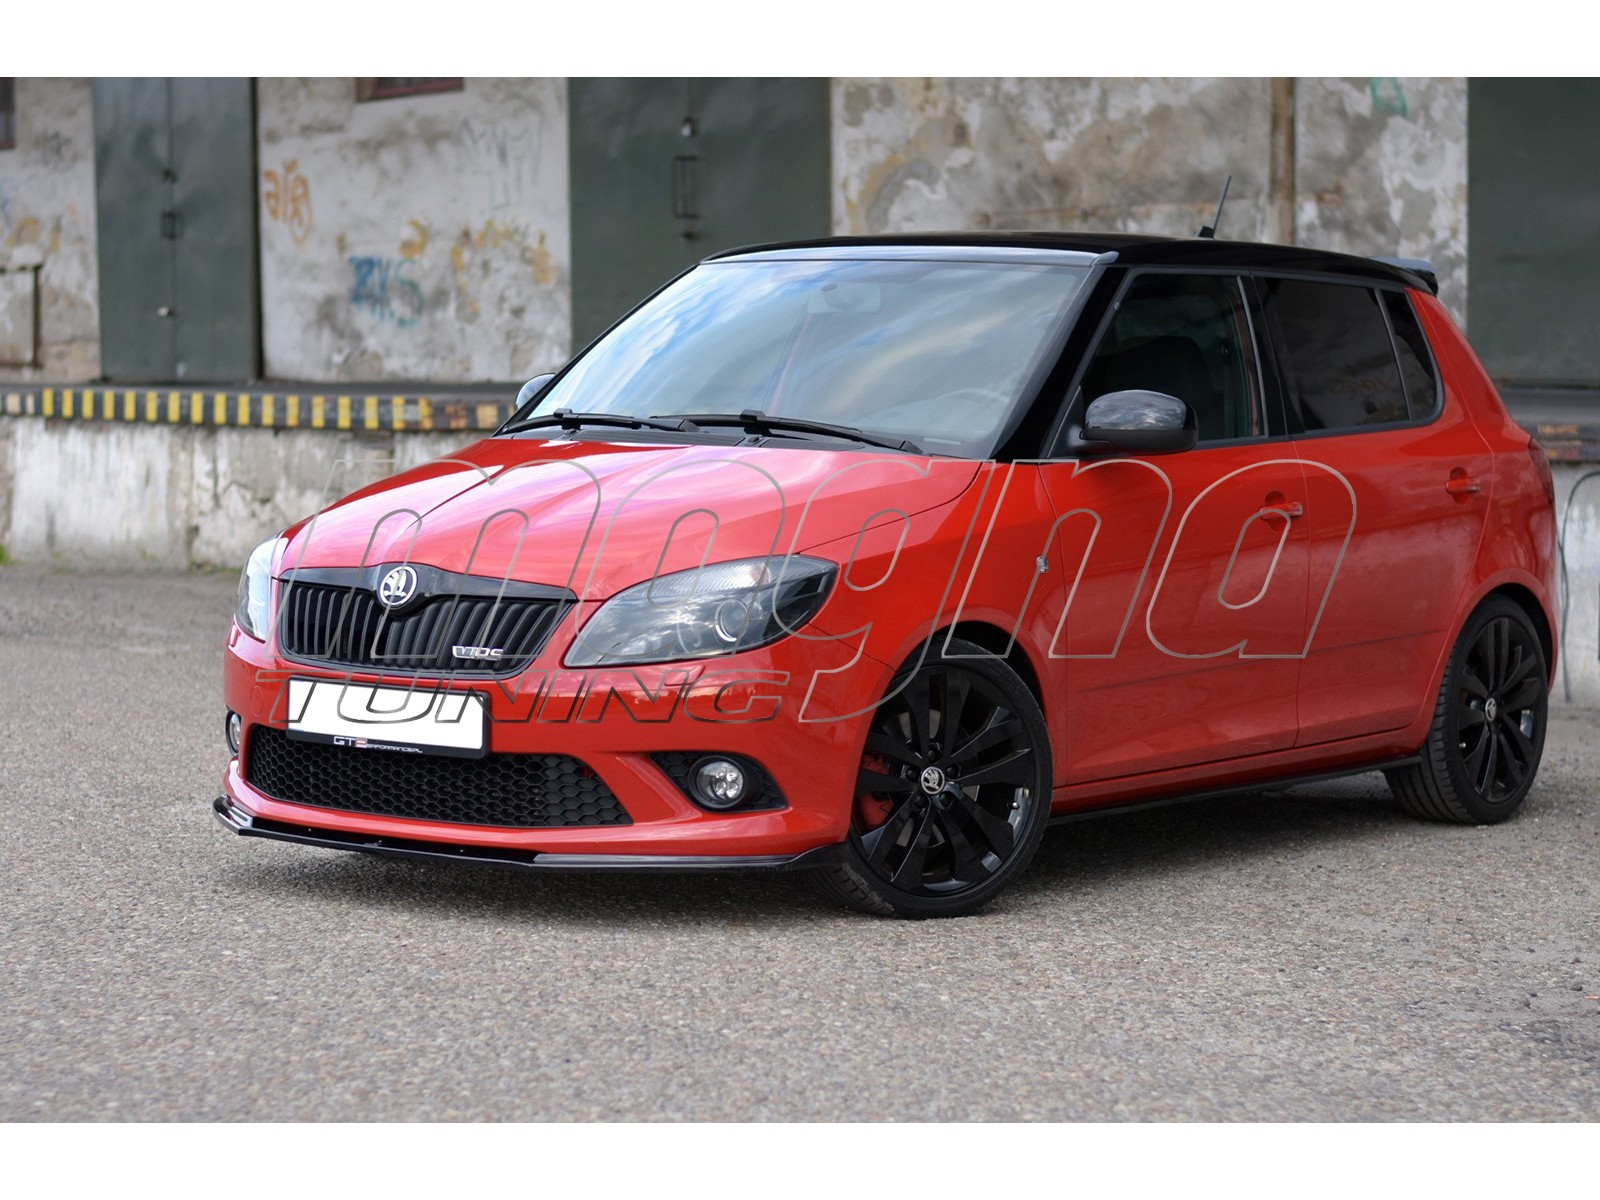 skoda fabia mk2 rs stream front bumper extension. Black Bedroom Furniture Sets. Home Design Ideas